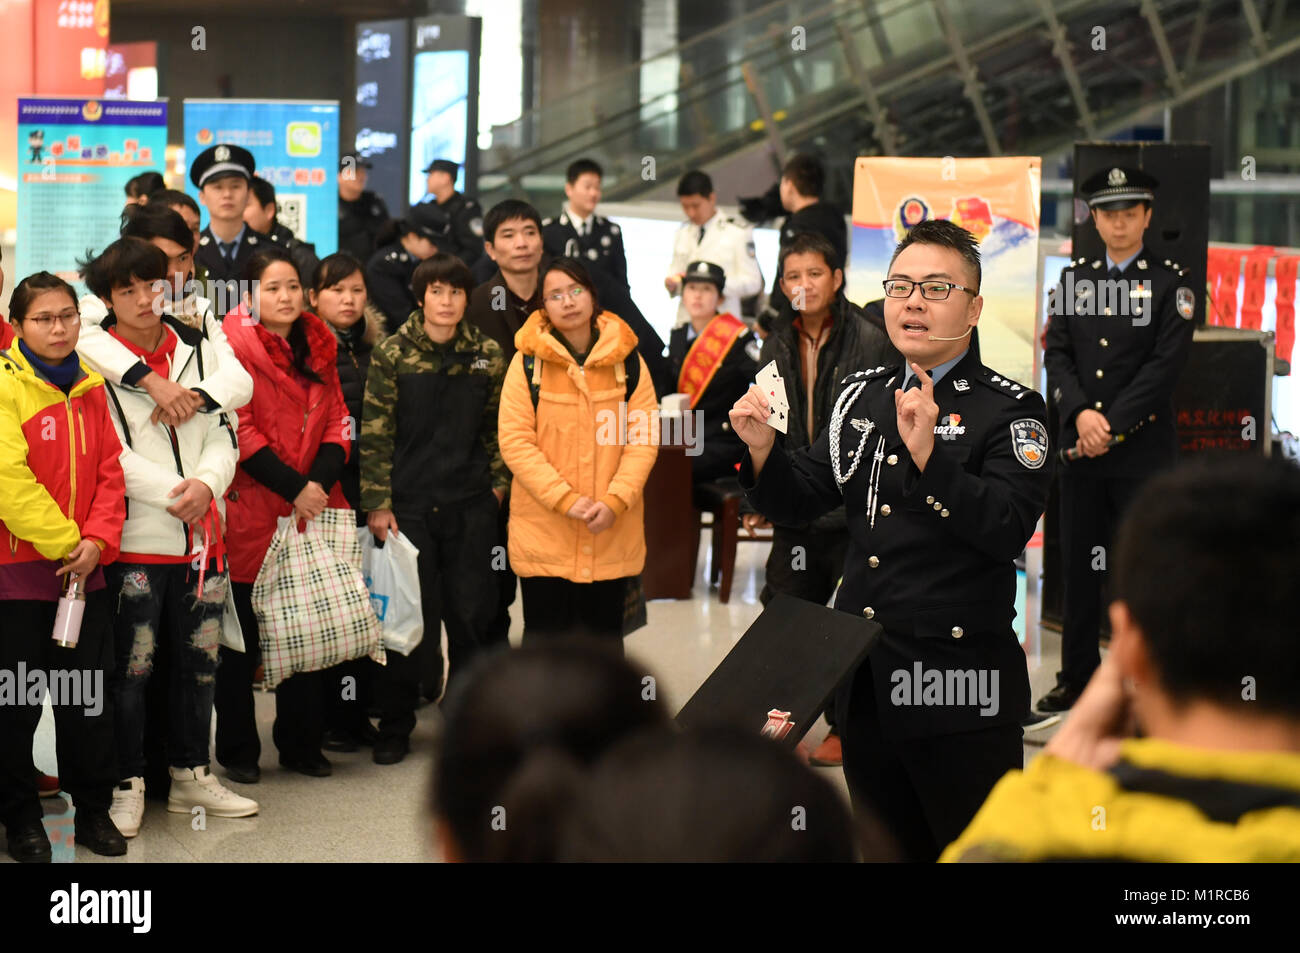 Nanning, China's Guangxi Province. 1st Feb, 2018. A police officer warns passengers of deceitful card tricks - Stock Image